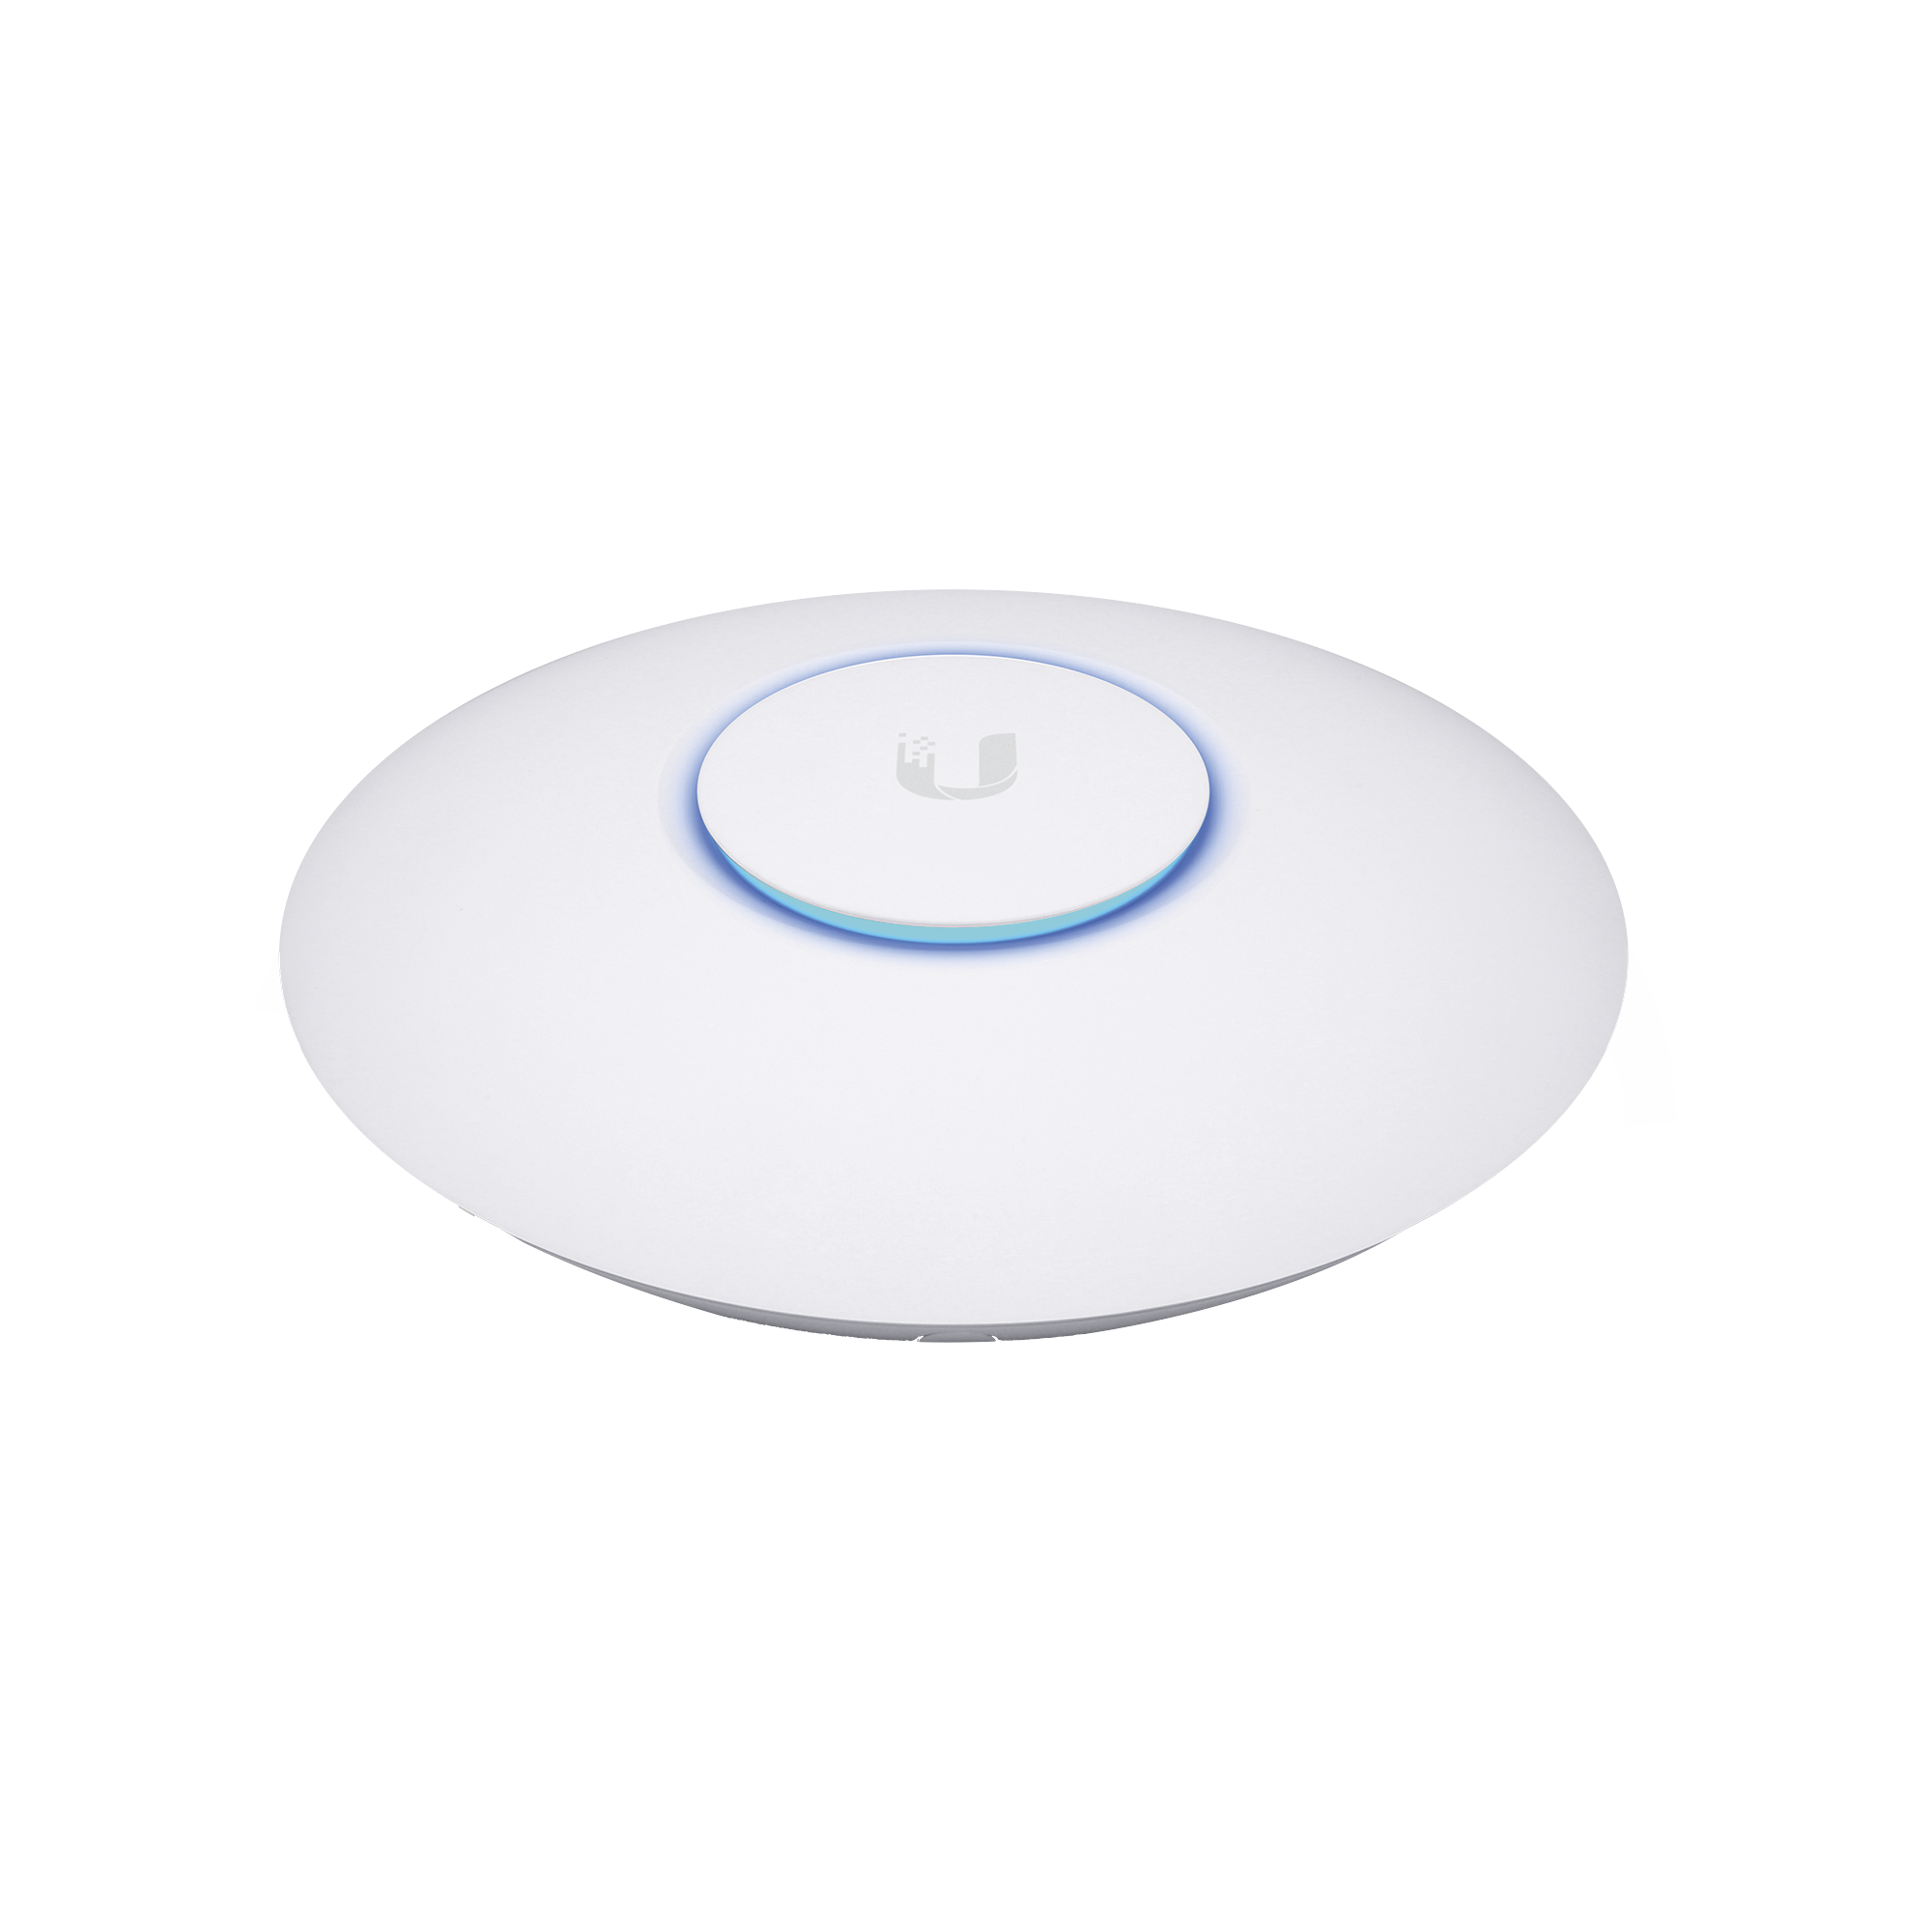 Access Point UniFi 802.11ac Wave 2,  MU-MIMO4X4 con antena Beamforming, hasta 1.7 Gbps, para interior PoE 802.3af, soporta 200 clientes, incluye PoE